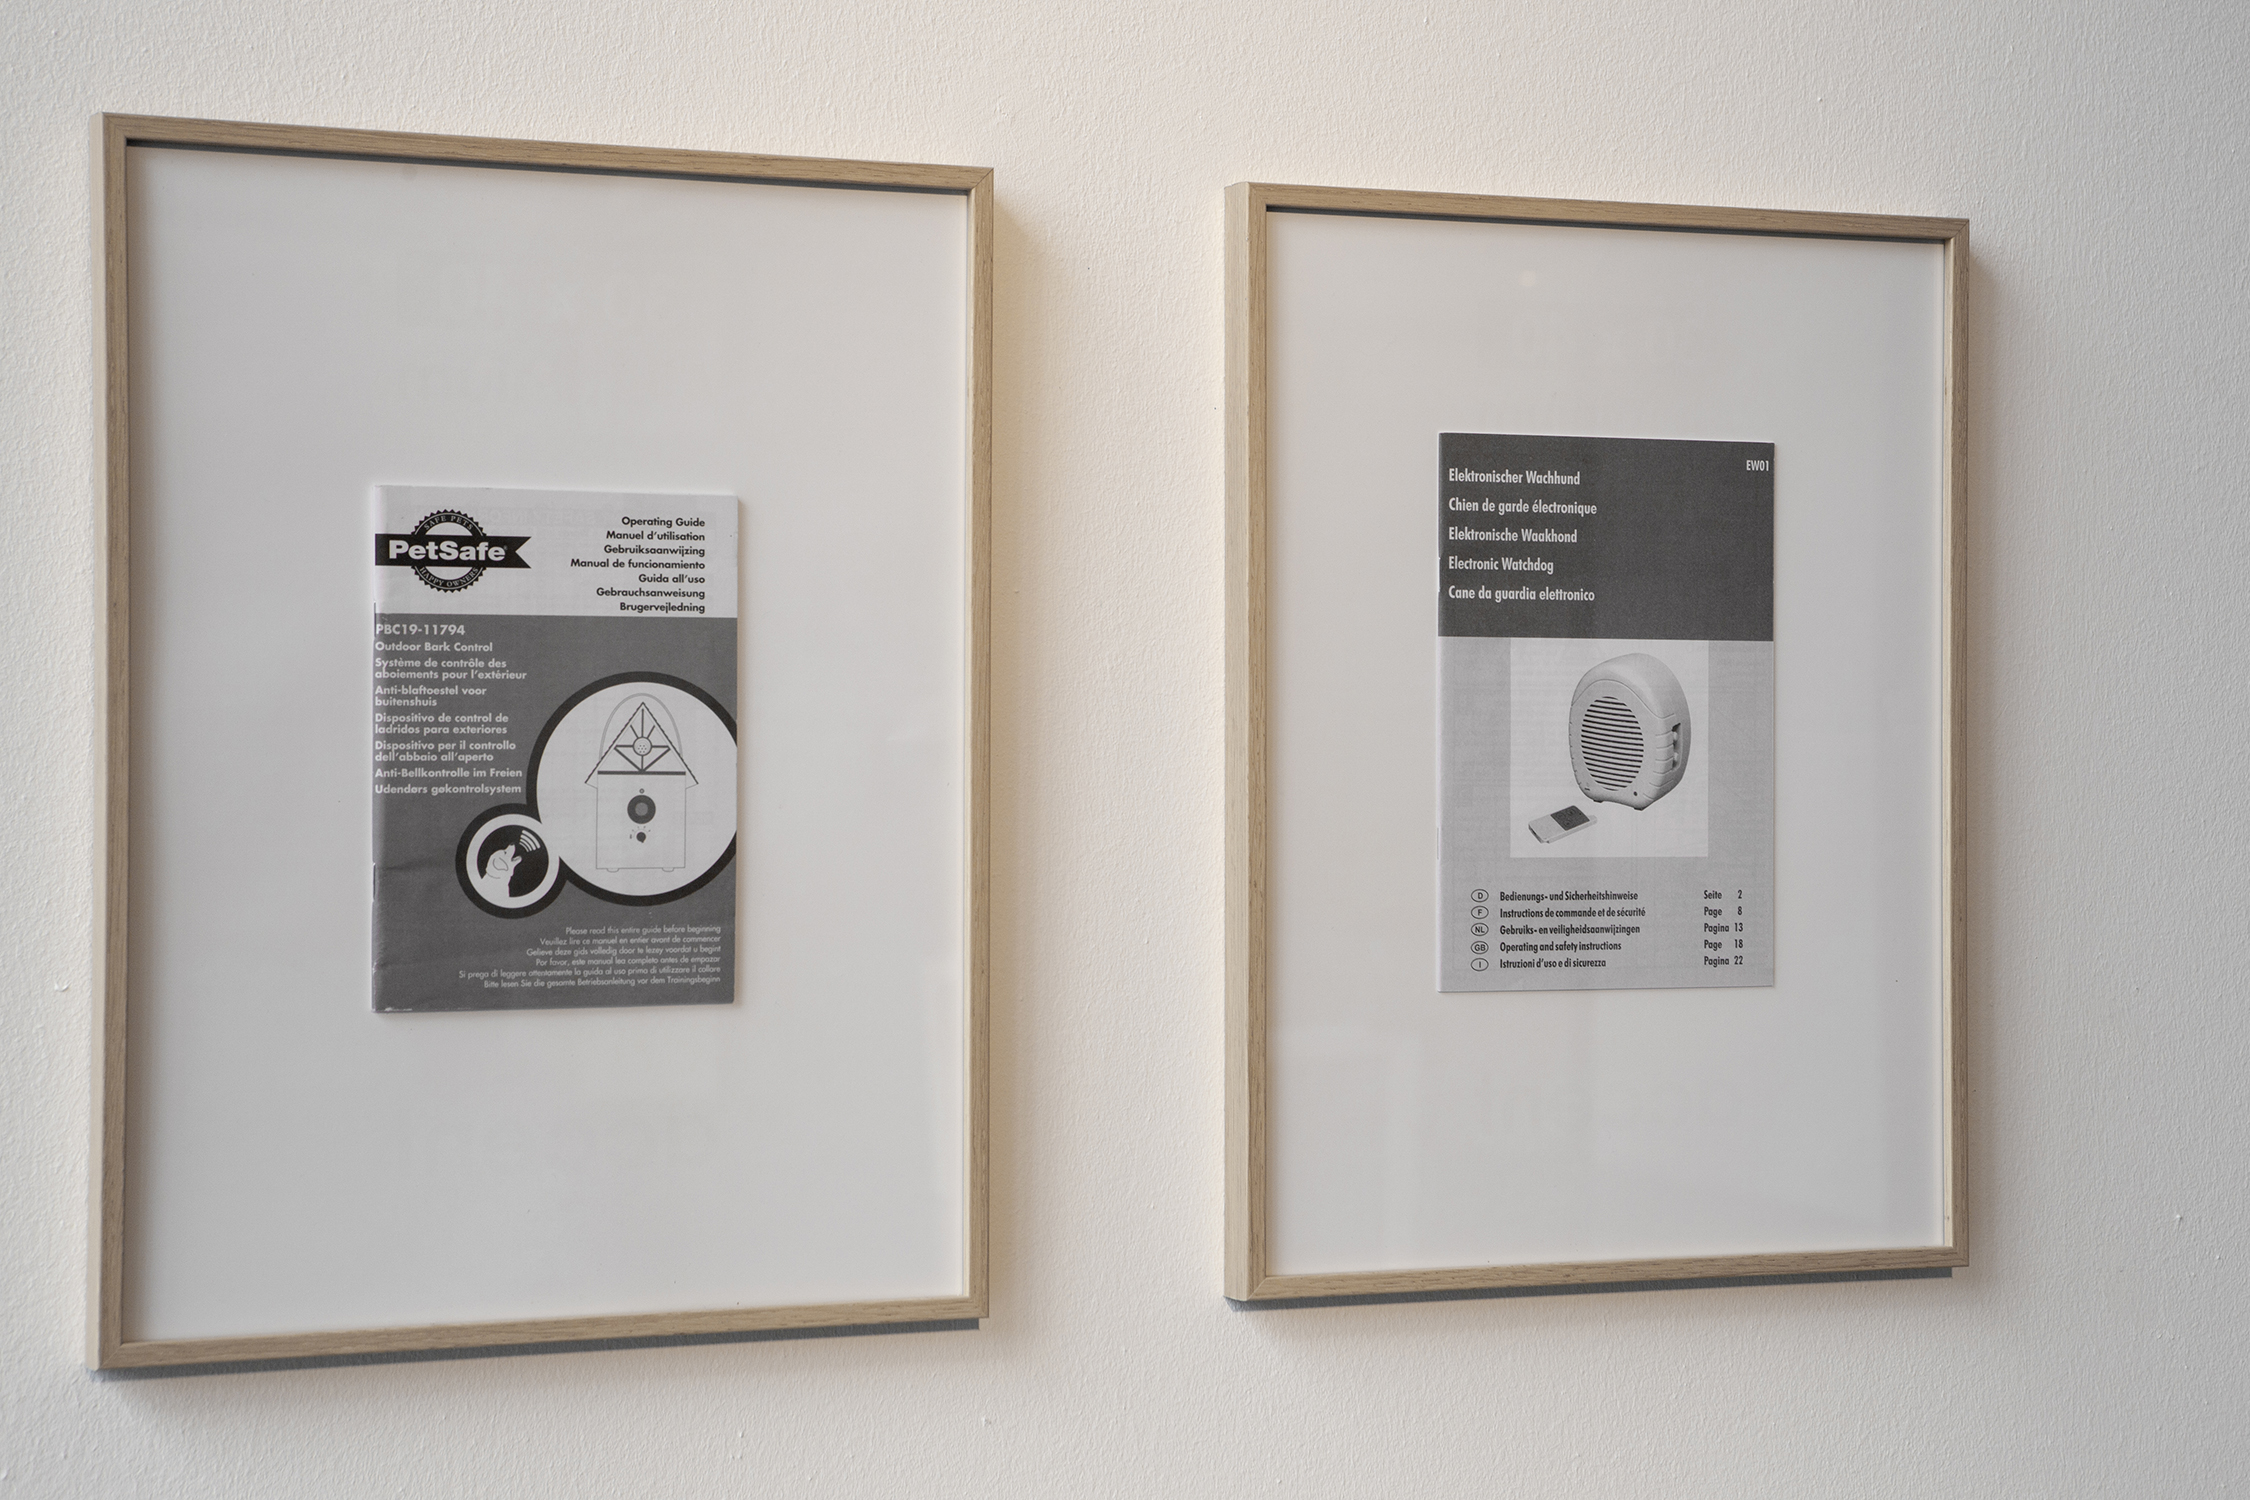 Bark control, 2019, carpet, mdf, a barkcontrol-device, an electronic watchdog-device (200x400x30cm), two manuals in wooden frames